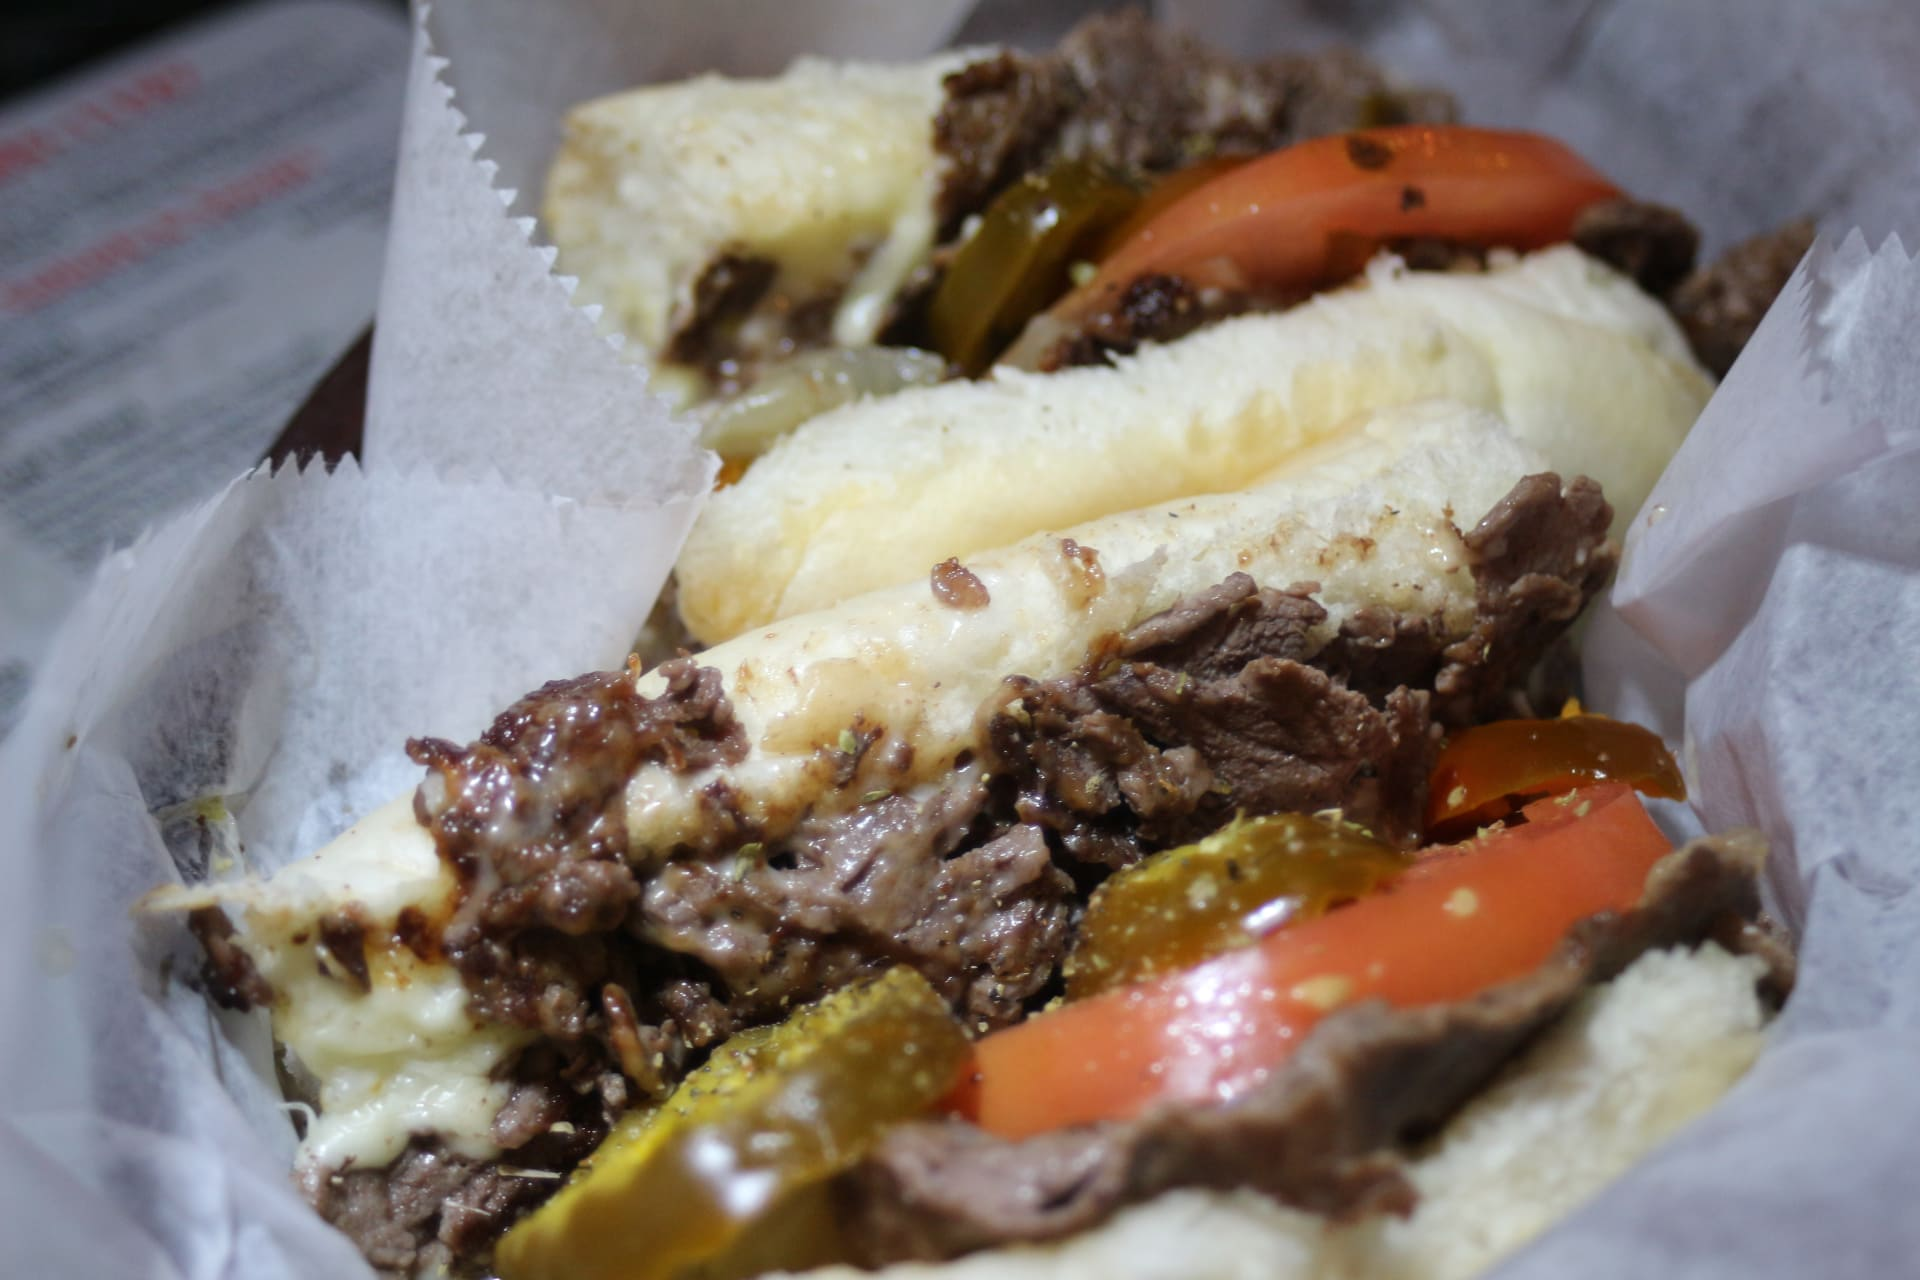 Charanns Cheesesteak - The Tampa Original